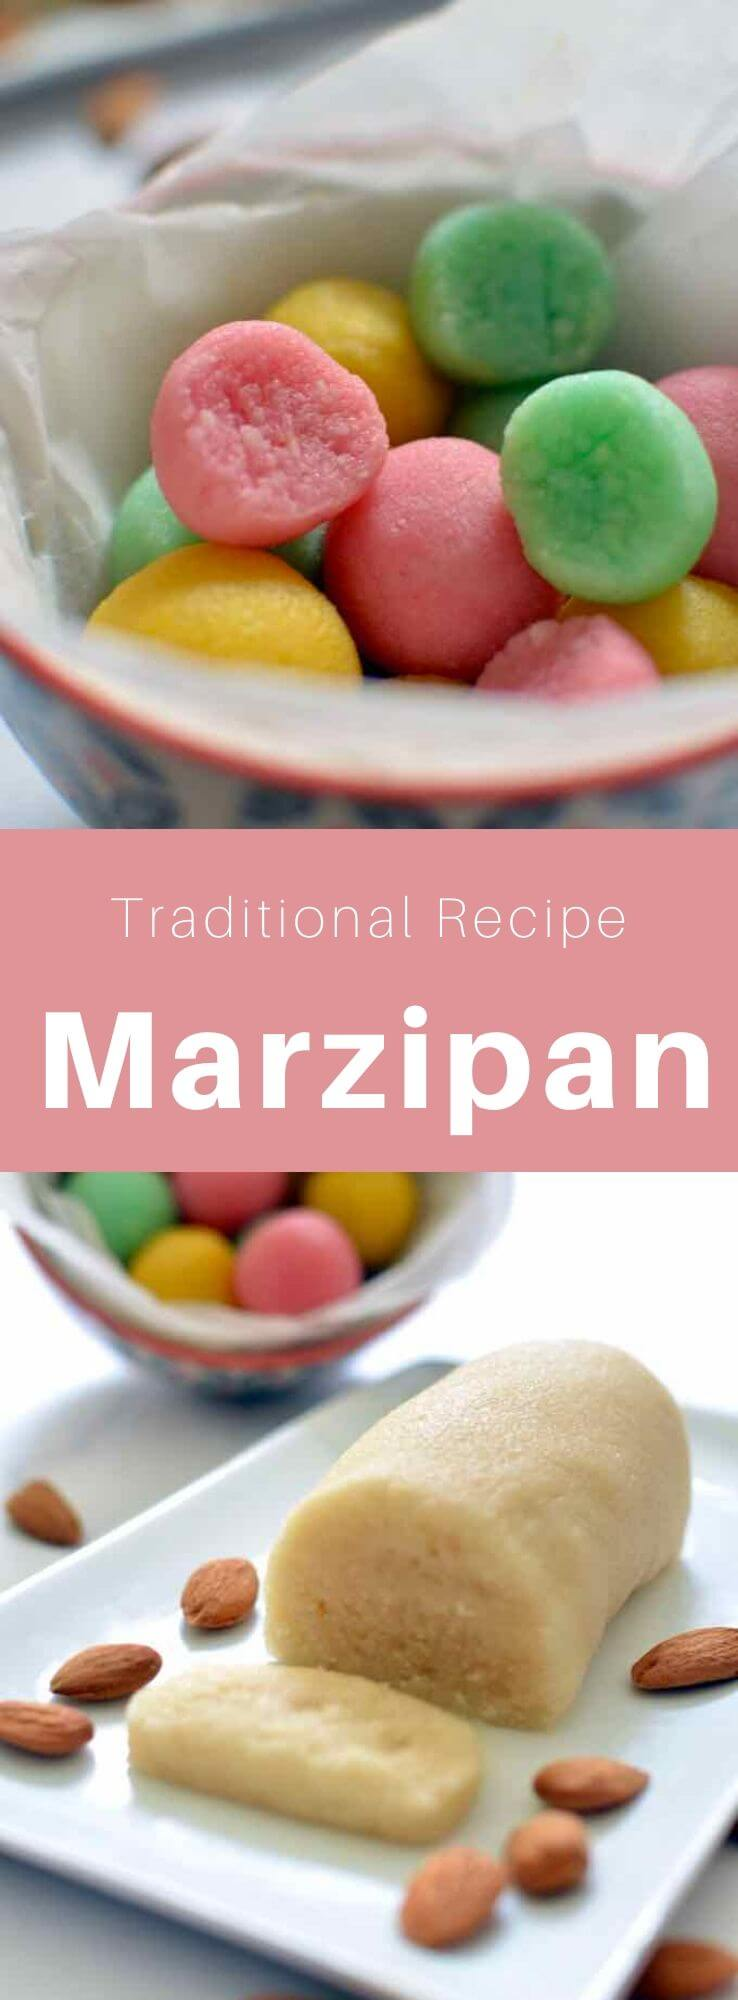 Marzipan is a traditional paste from several European countries, made from finely ground blanched almonds, mixed with egg white and icing sugar. #EuropeanRecipe #WorldCuisine #196flavors